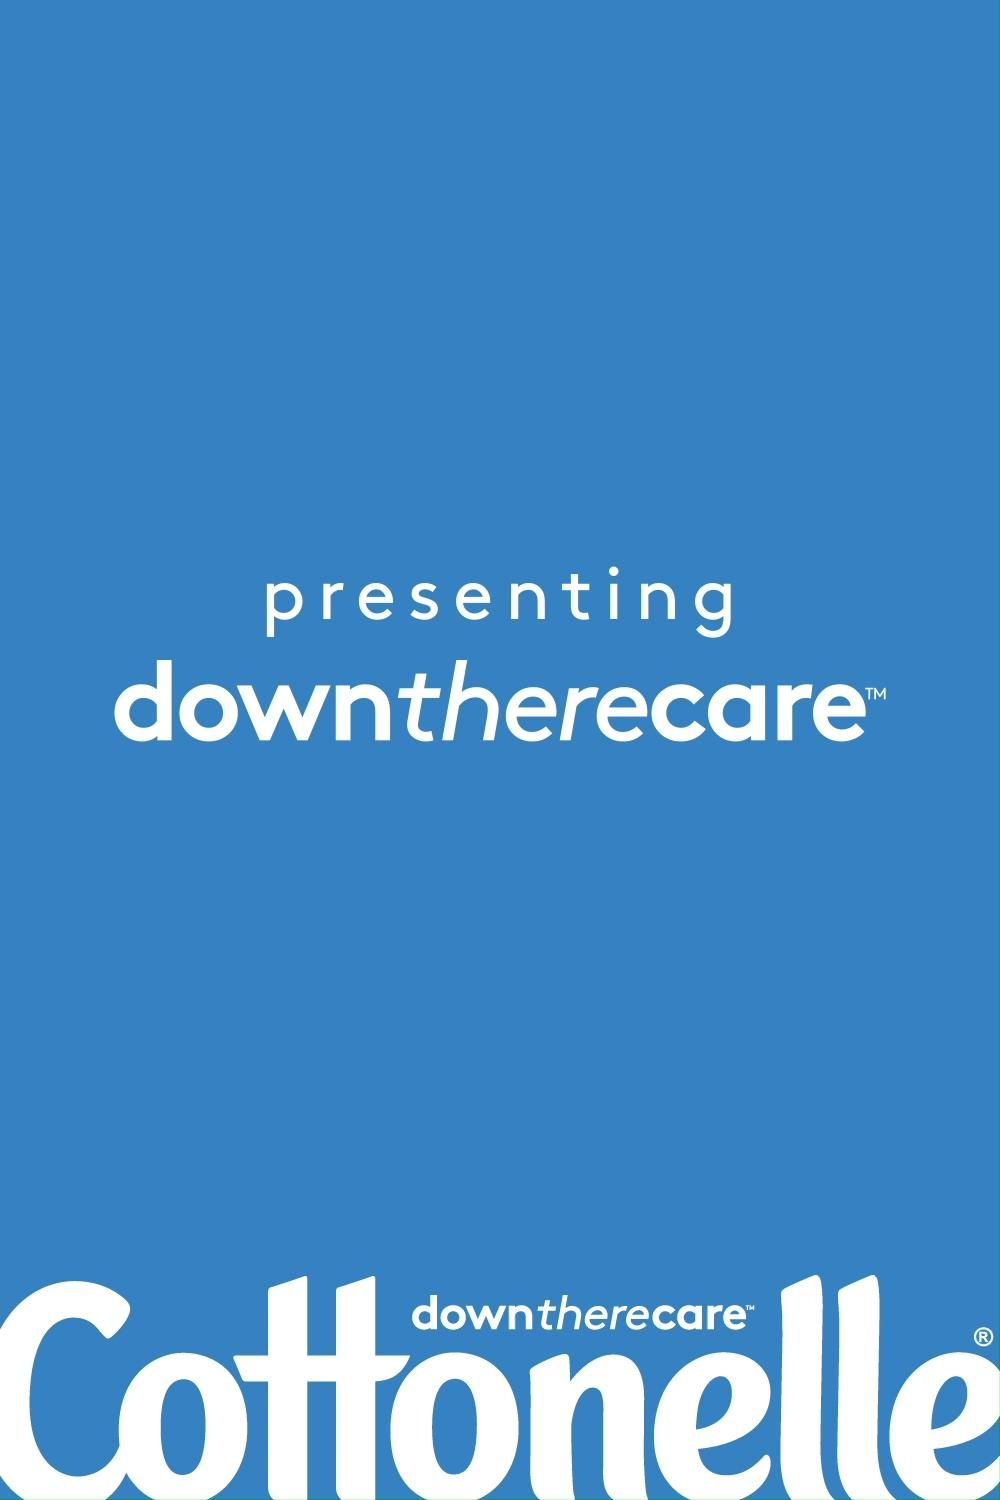 #treatyourself with downtherecare